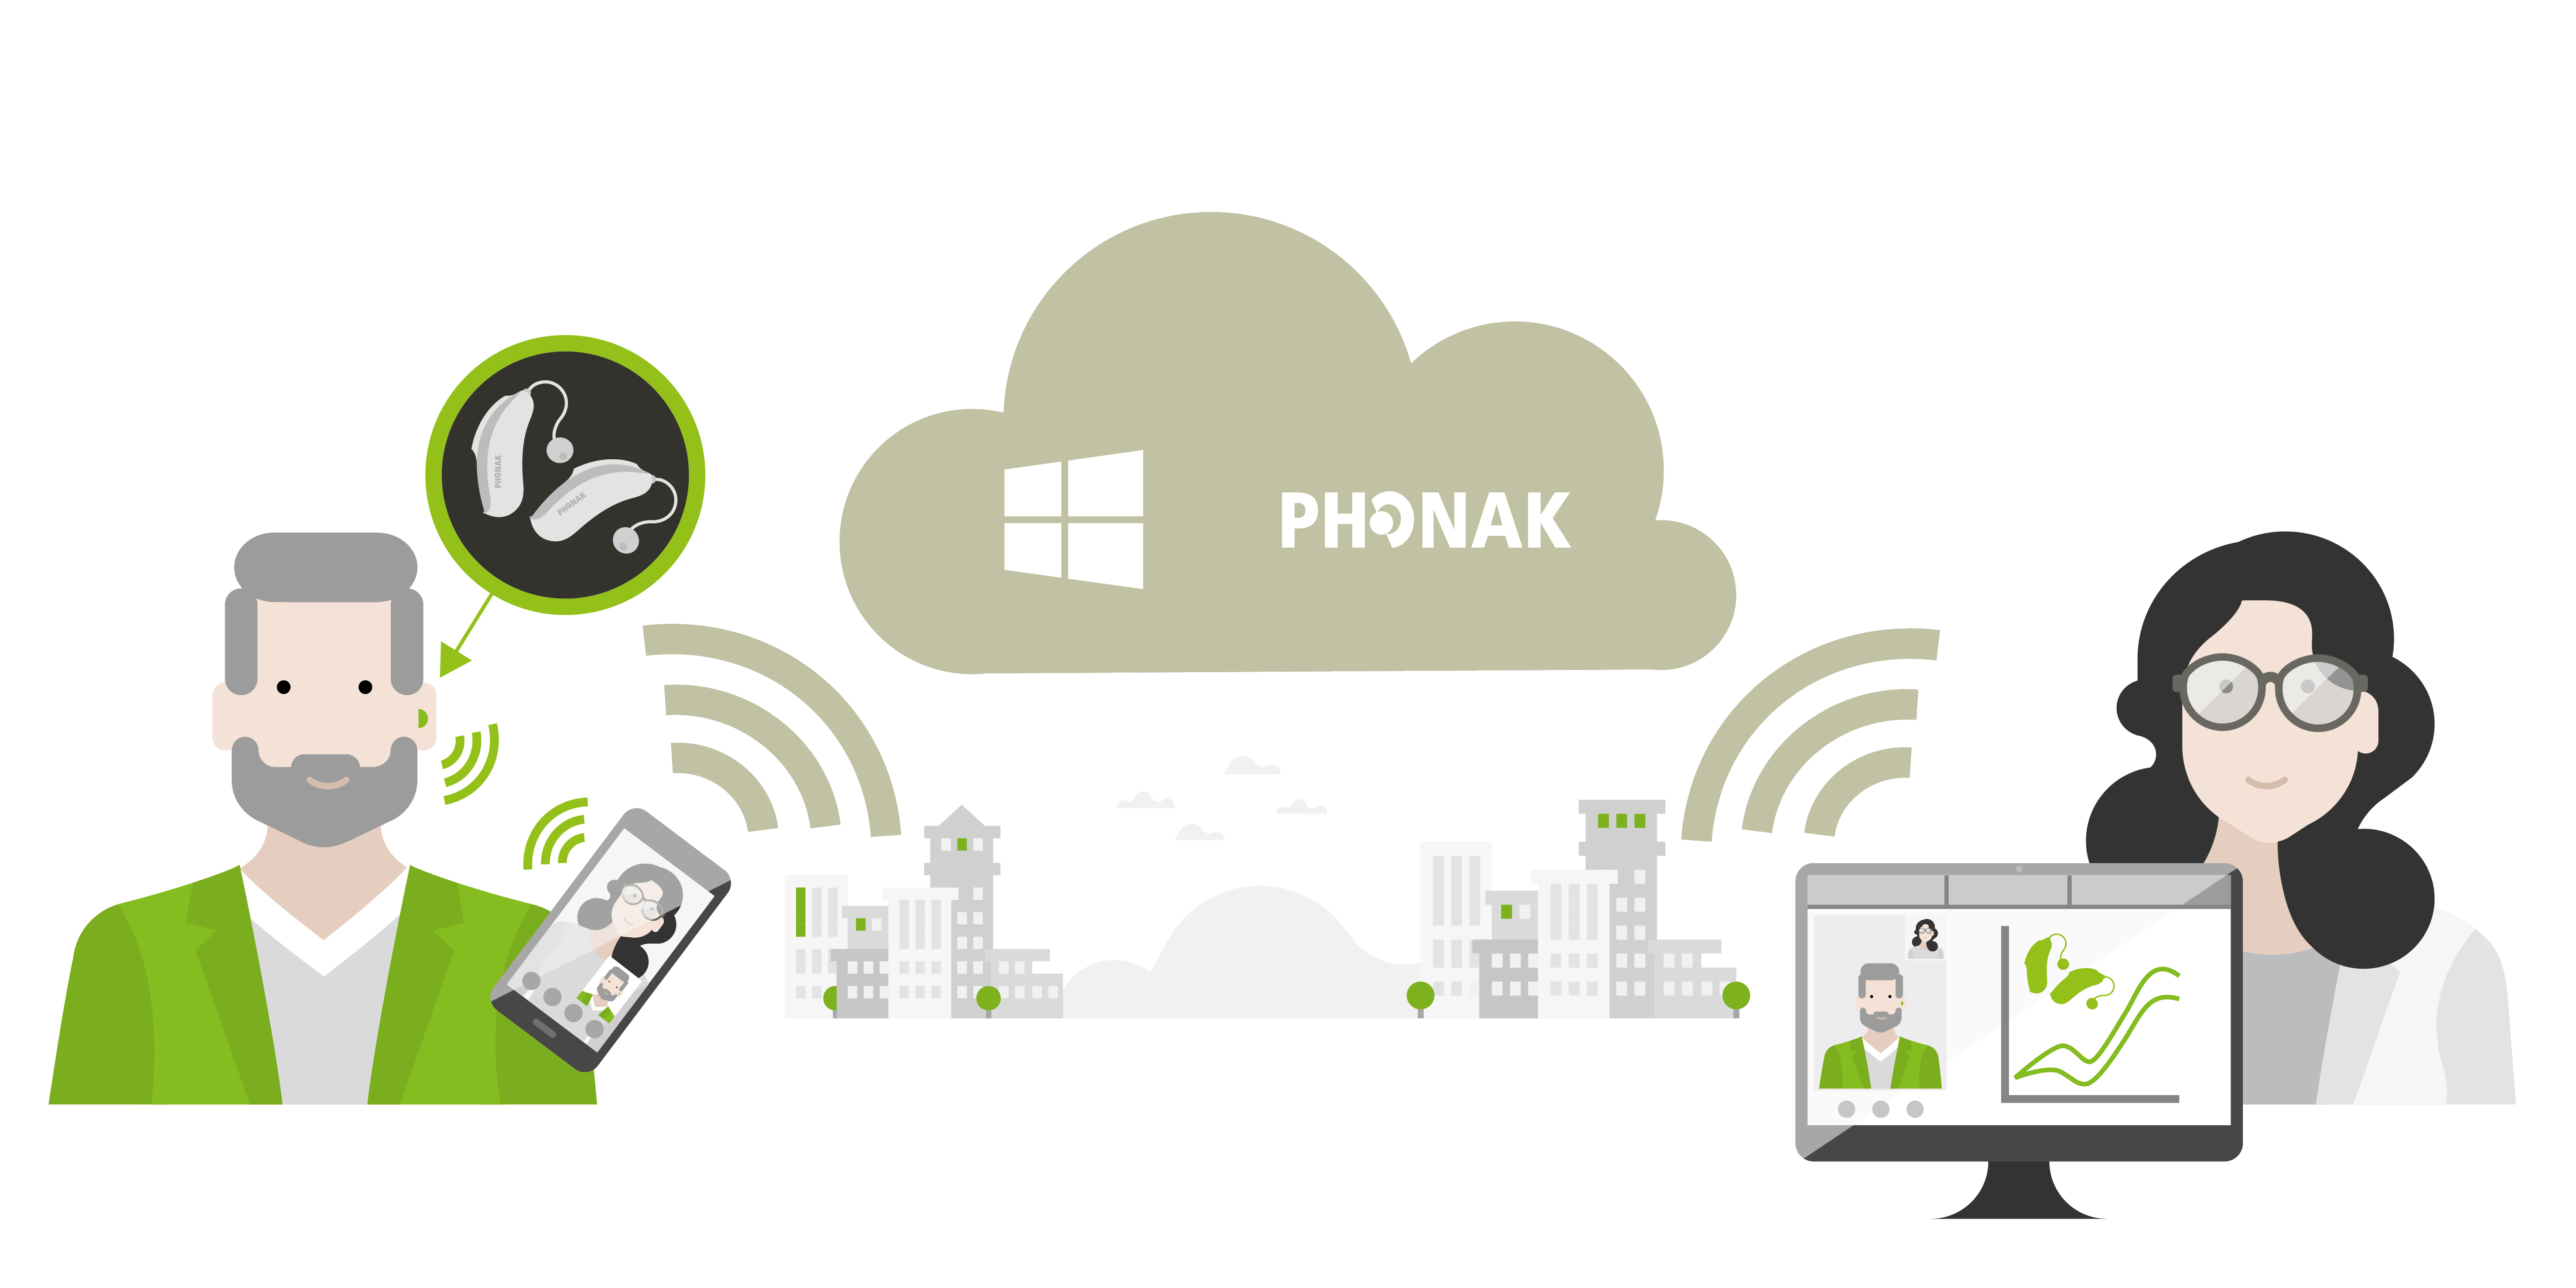 Phonak teams up with Microsoft to improve access to hearing care